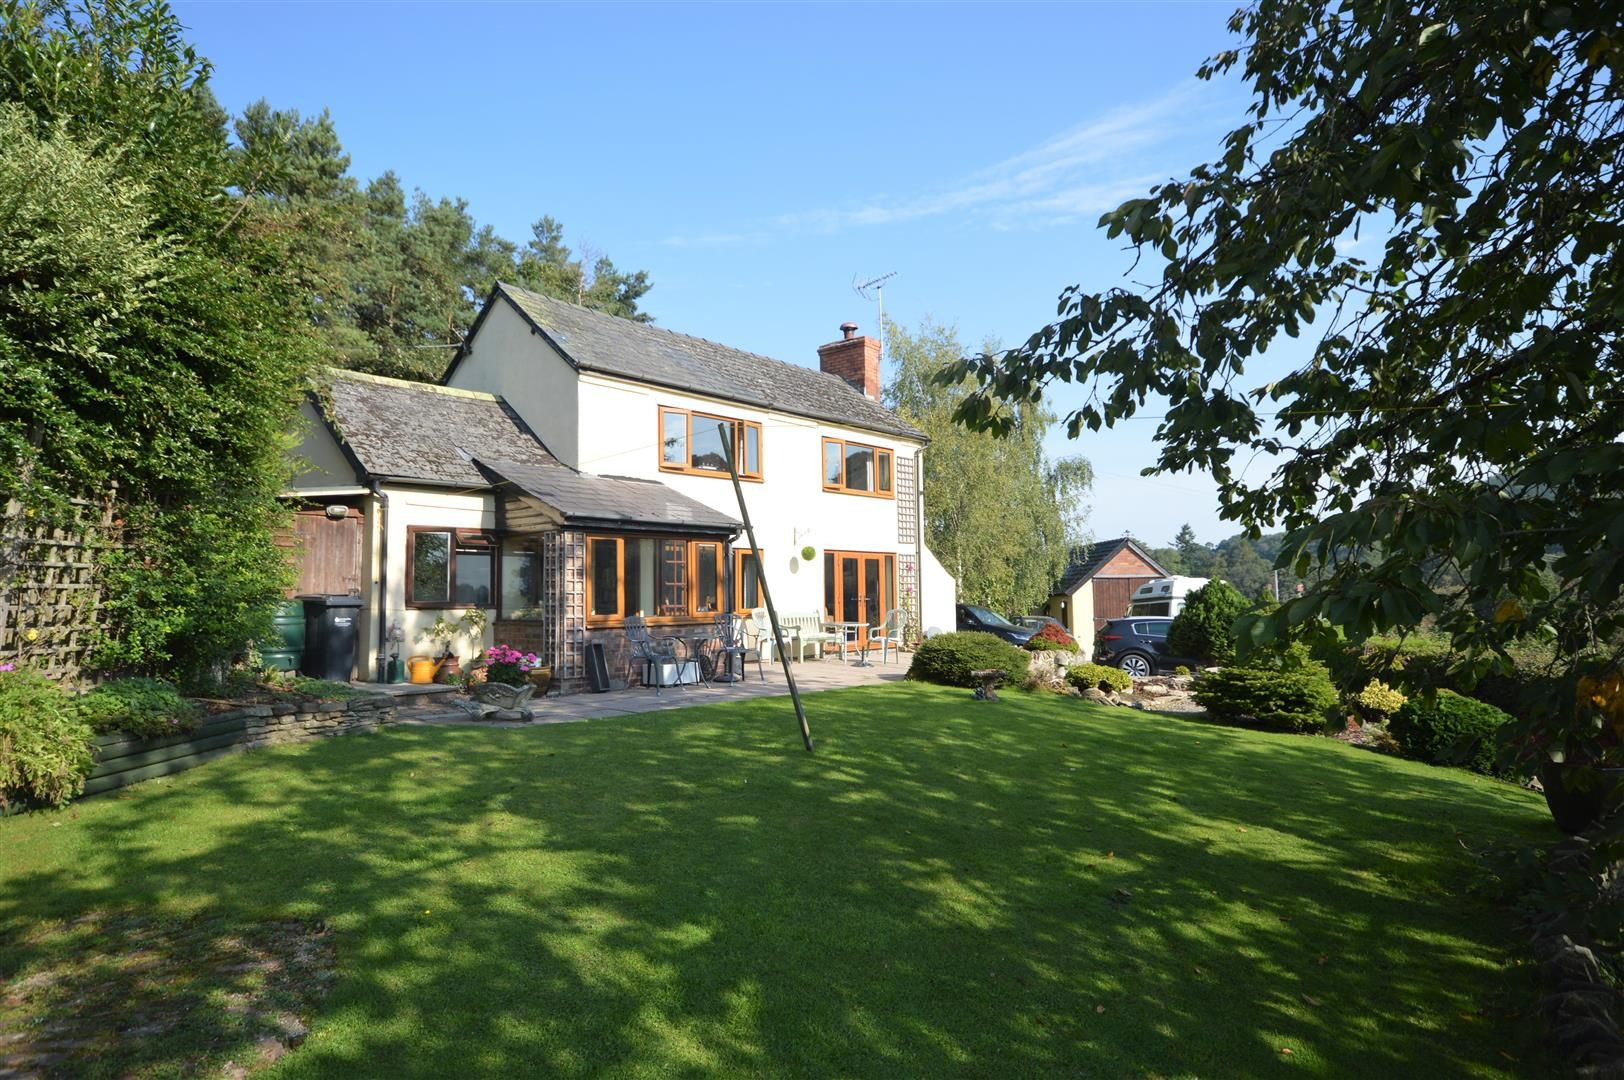 2 bed house for sale in Aymestrey - Property Image 1